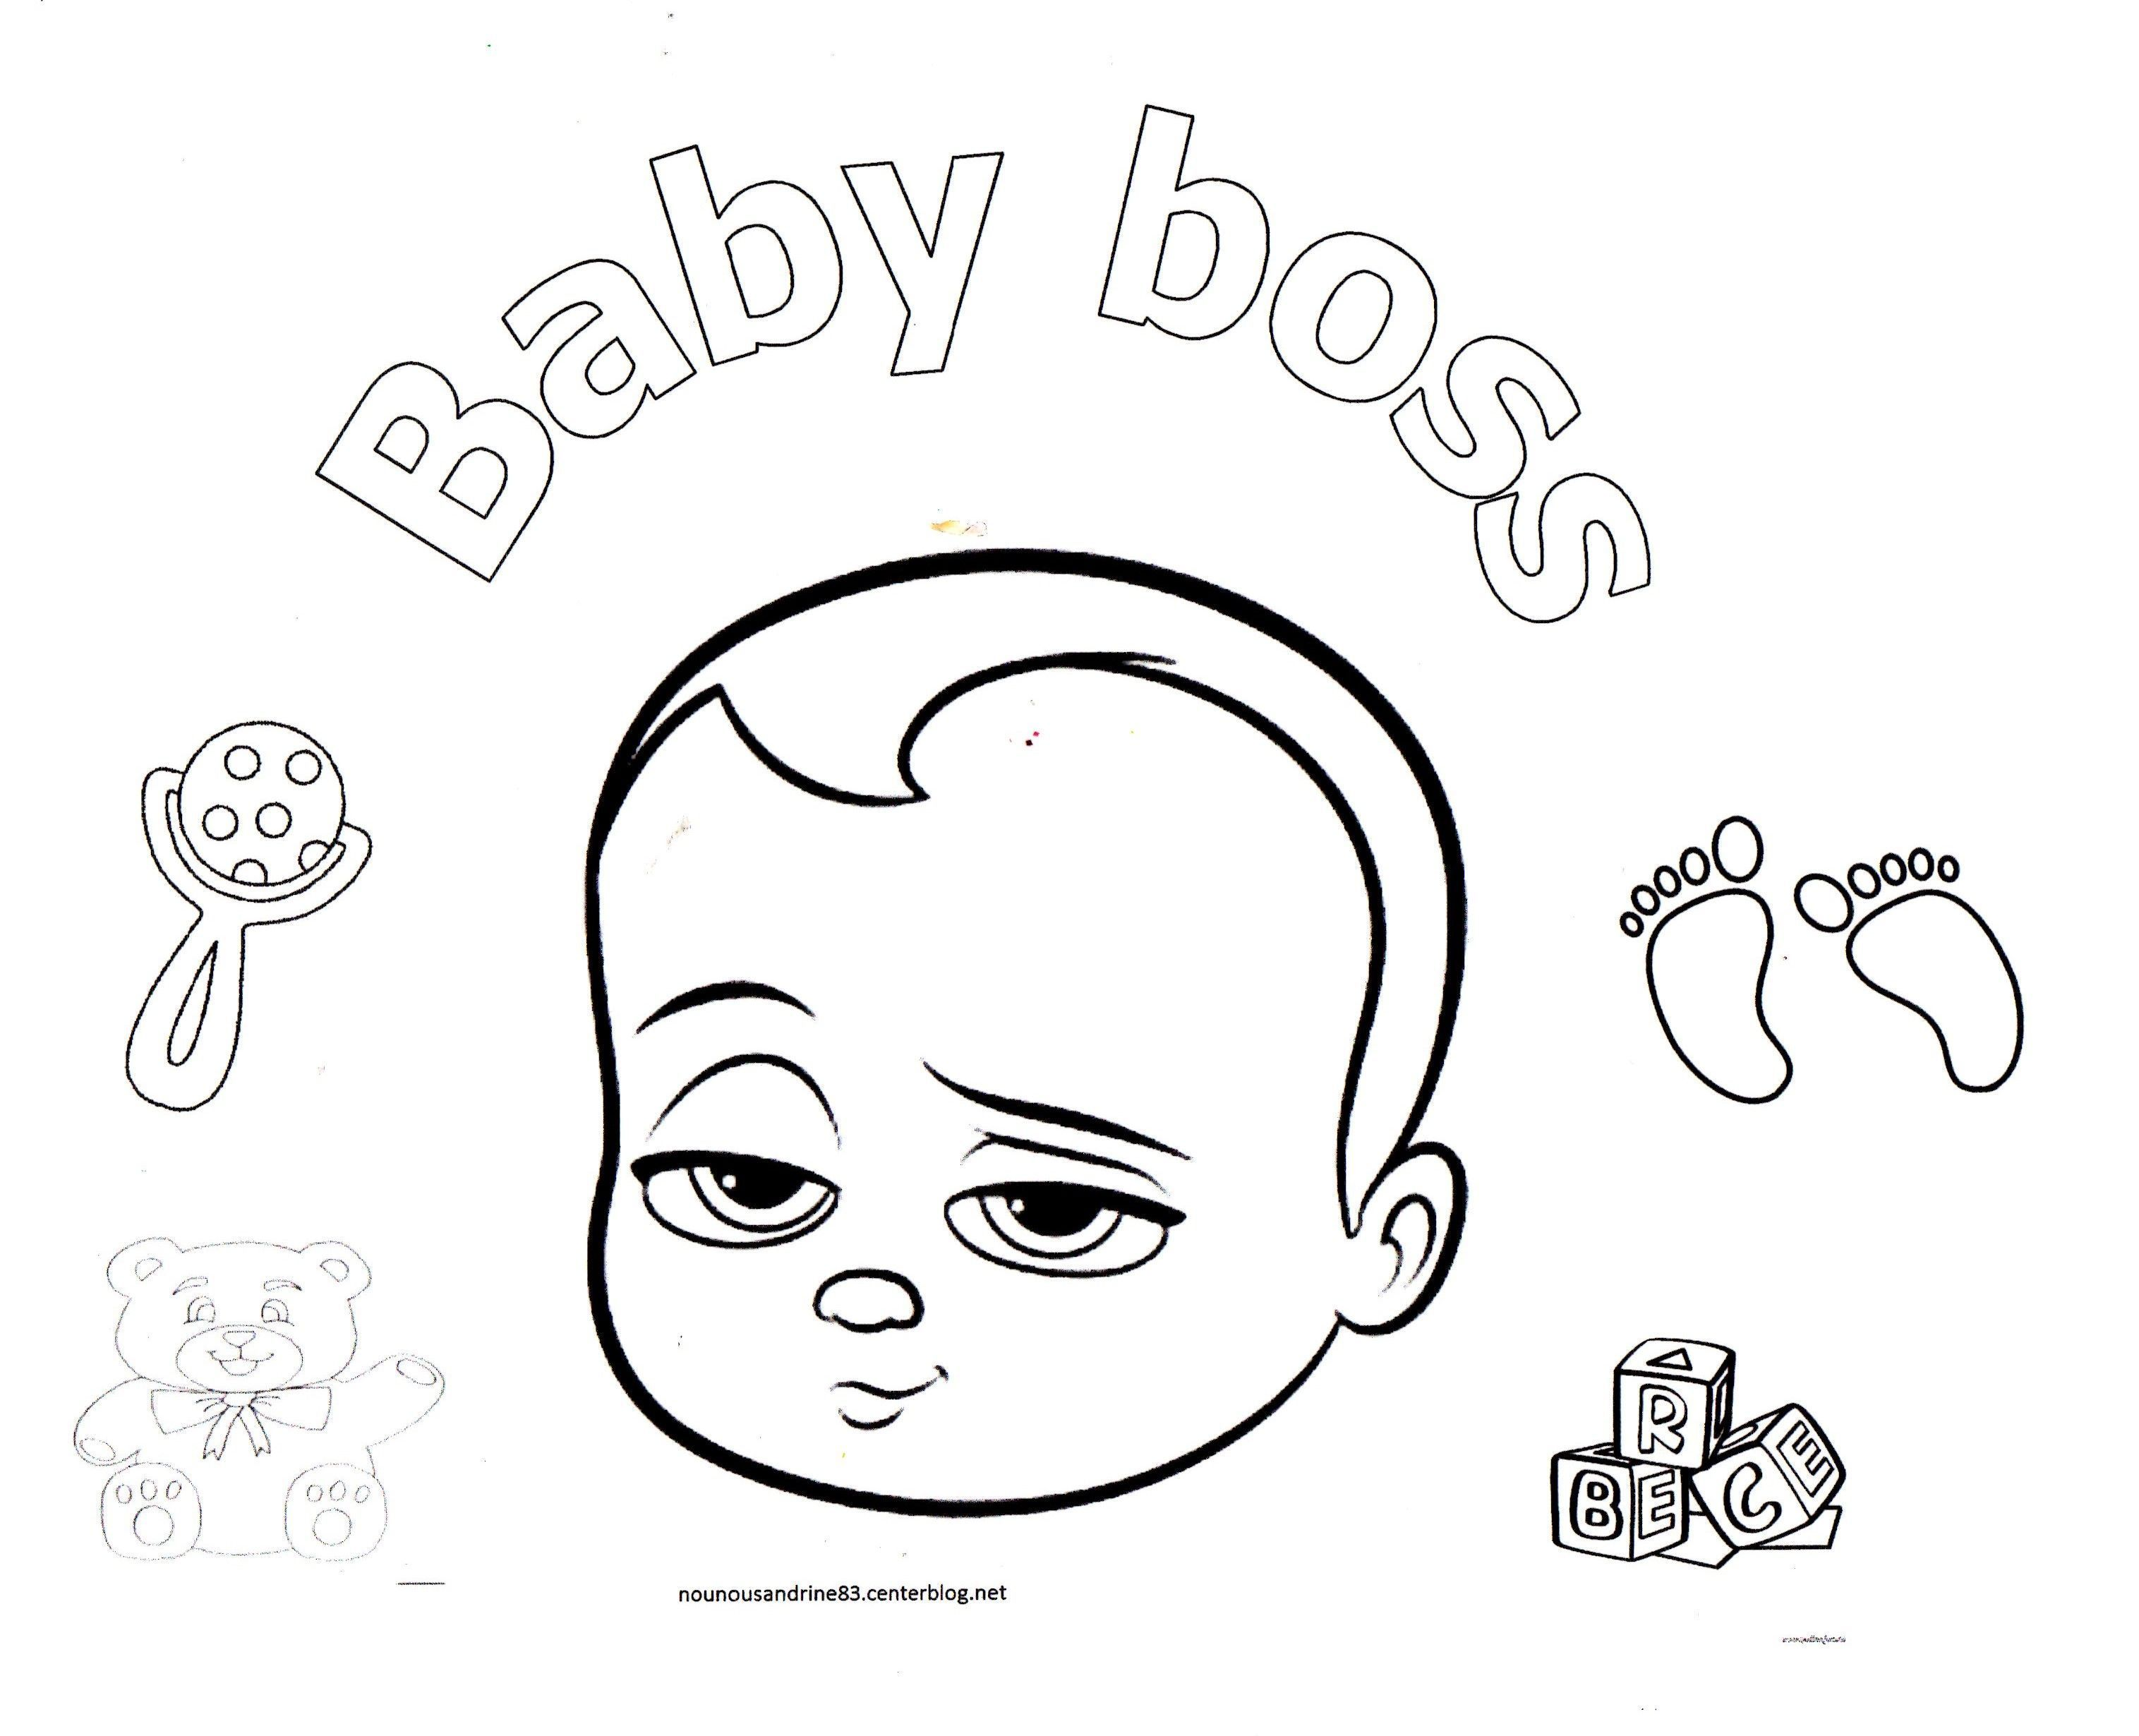 Inspirant Dessin Baby Boss A Colorier